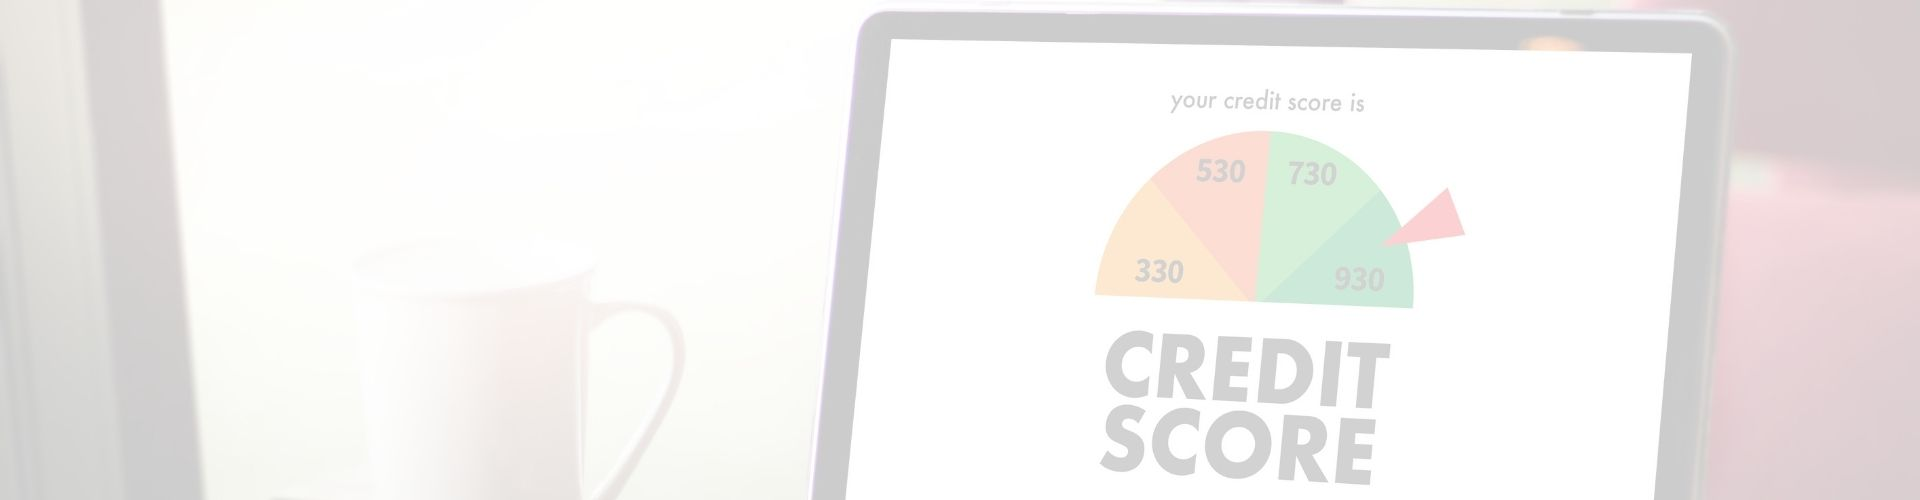 what credit score is needed to buy a house in nj